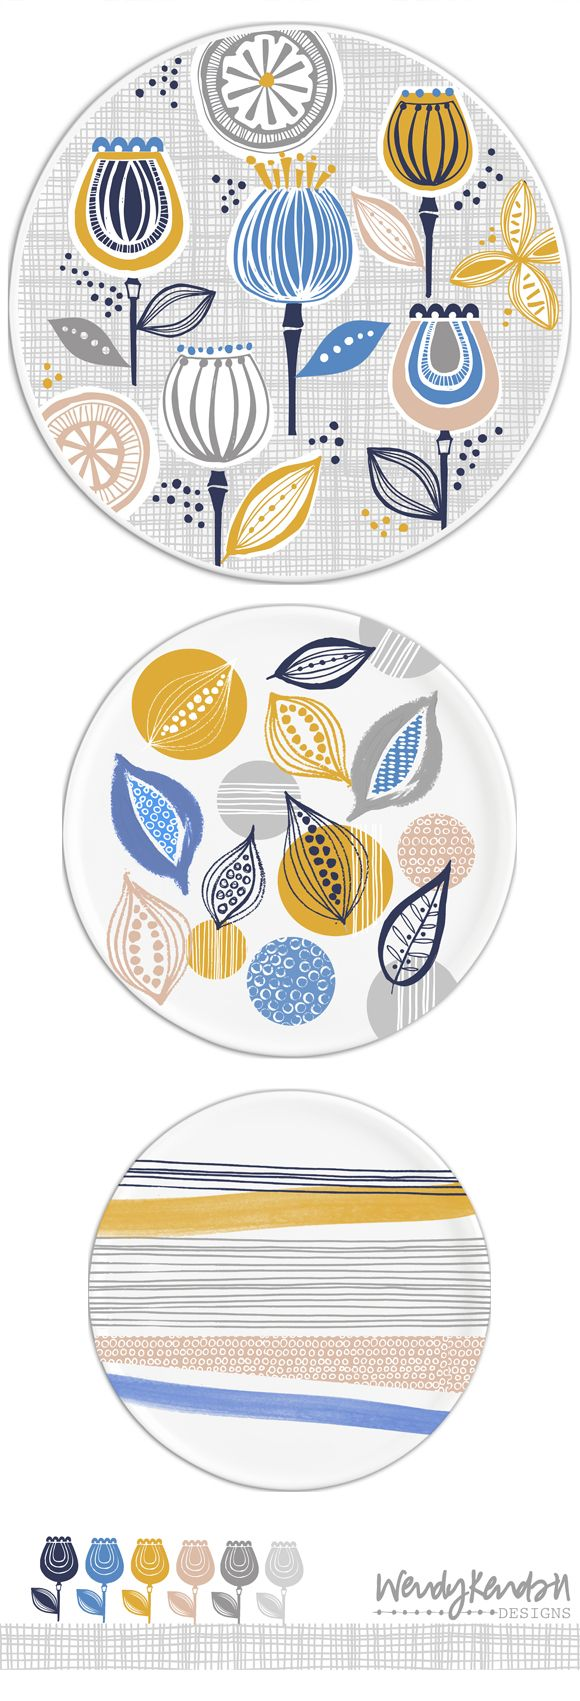 wendy kendall designs – freelance surface pattern designer » flowerpod